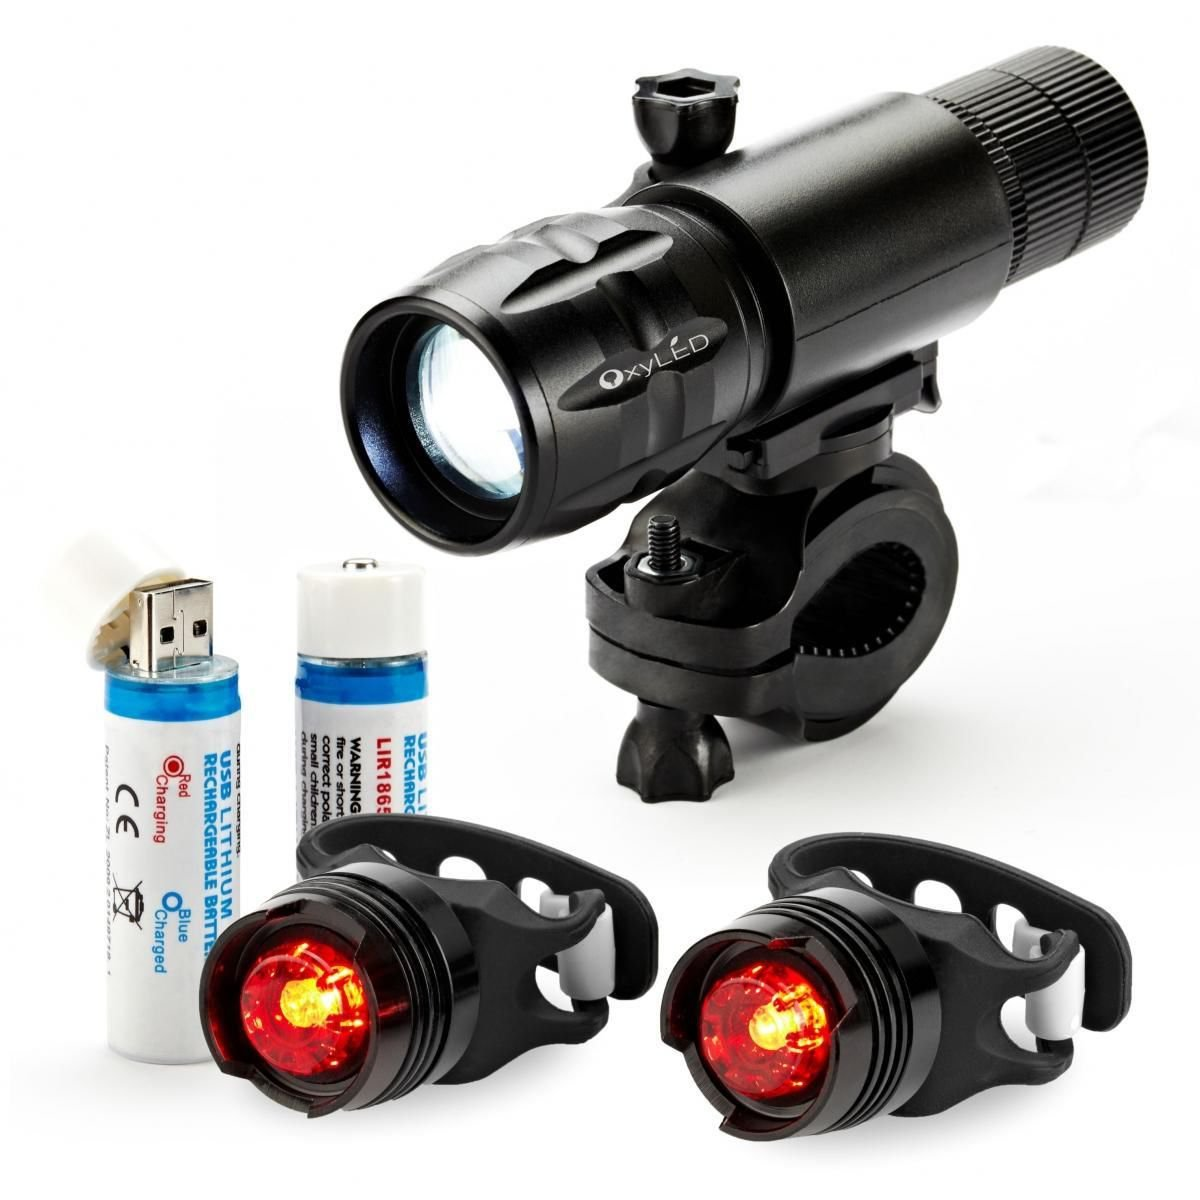 Rechargeable LED Bike Head Light set 2 Taillights Bicycle Back Rear Flashlight